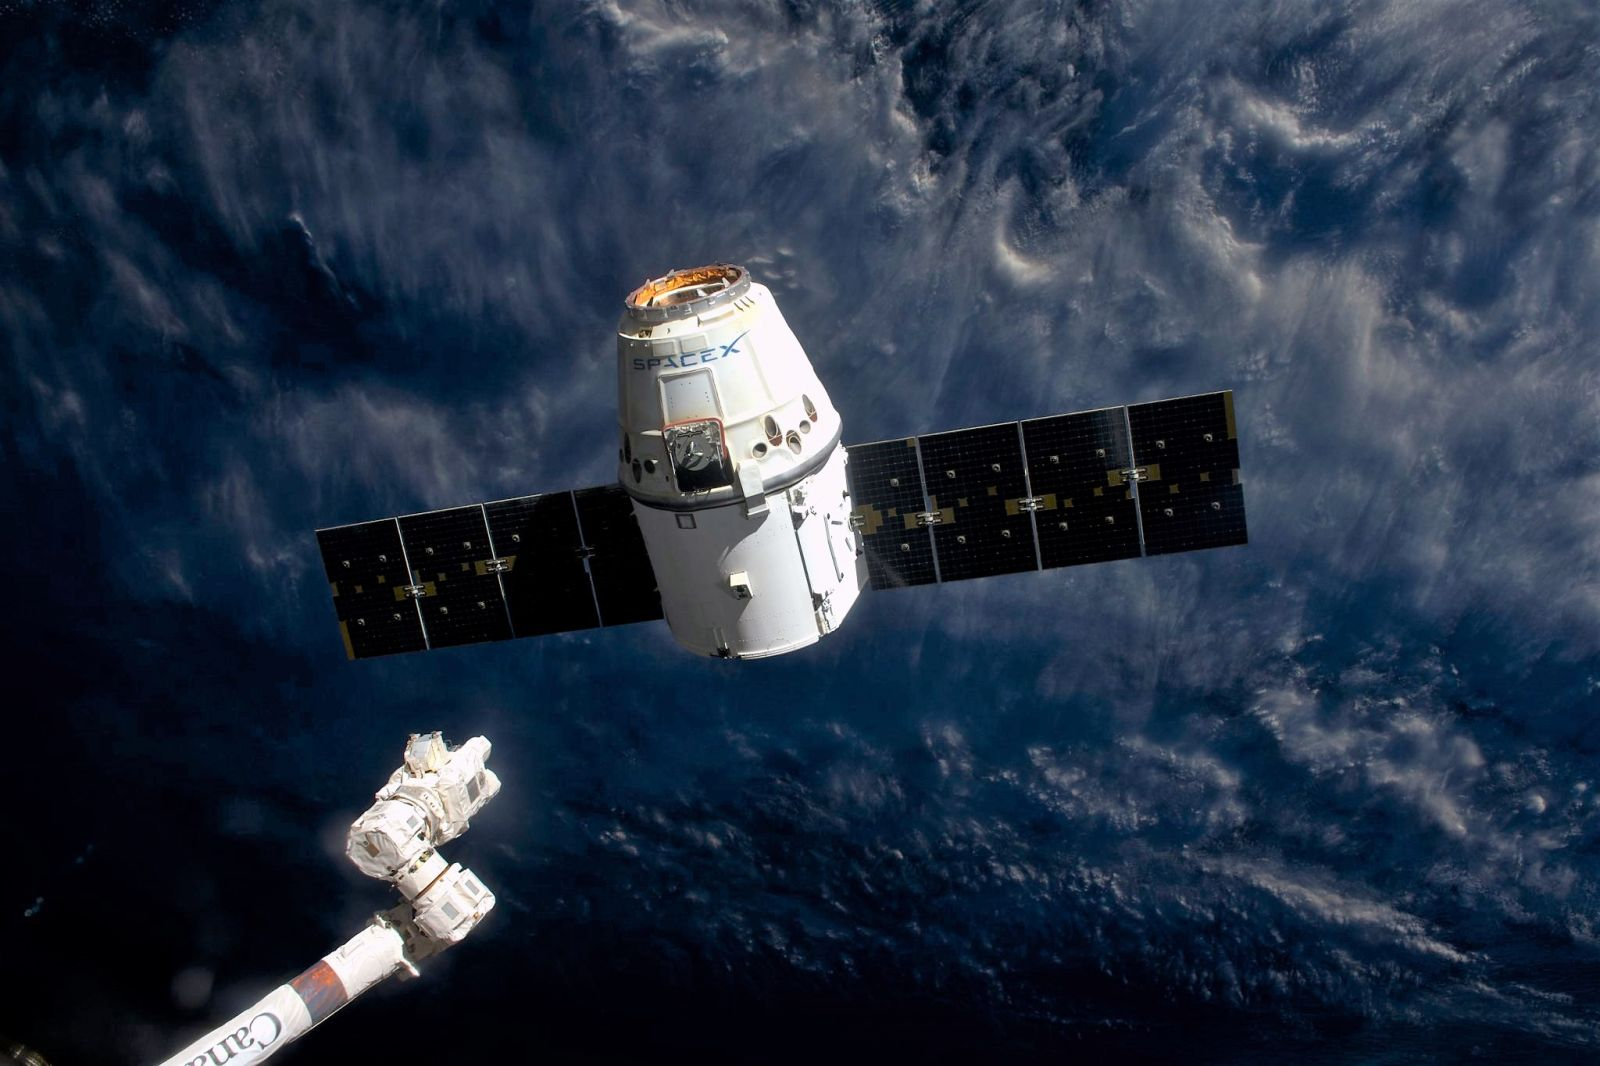 Canadarm2  releases the CRS-10 Dragon capsule. Photo Credit: Thomas Pesquet / NASA